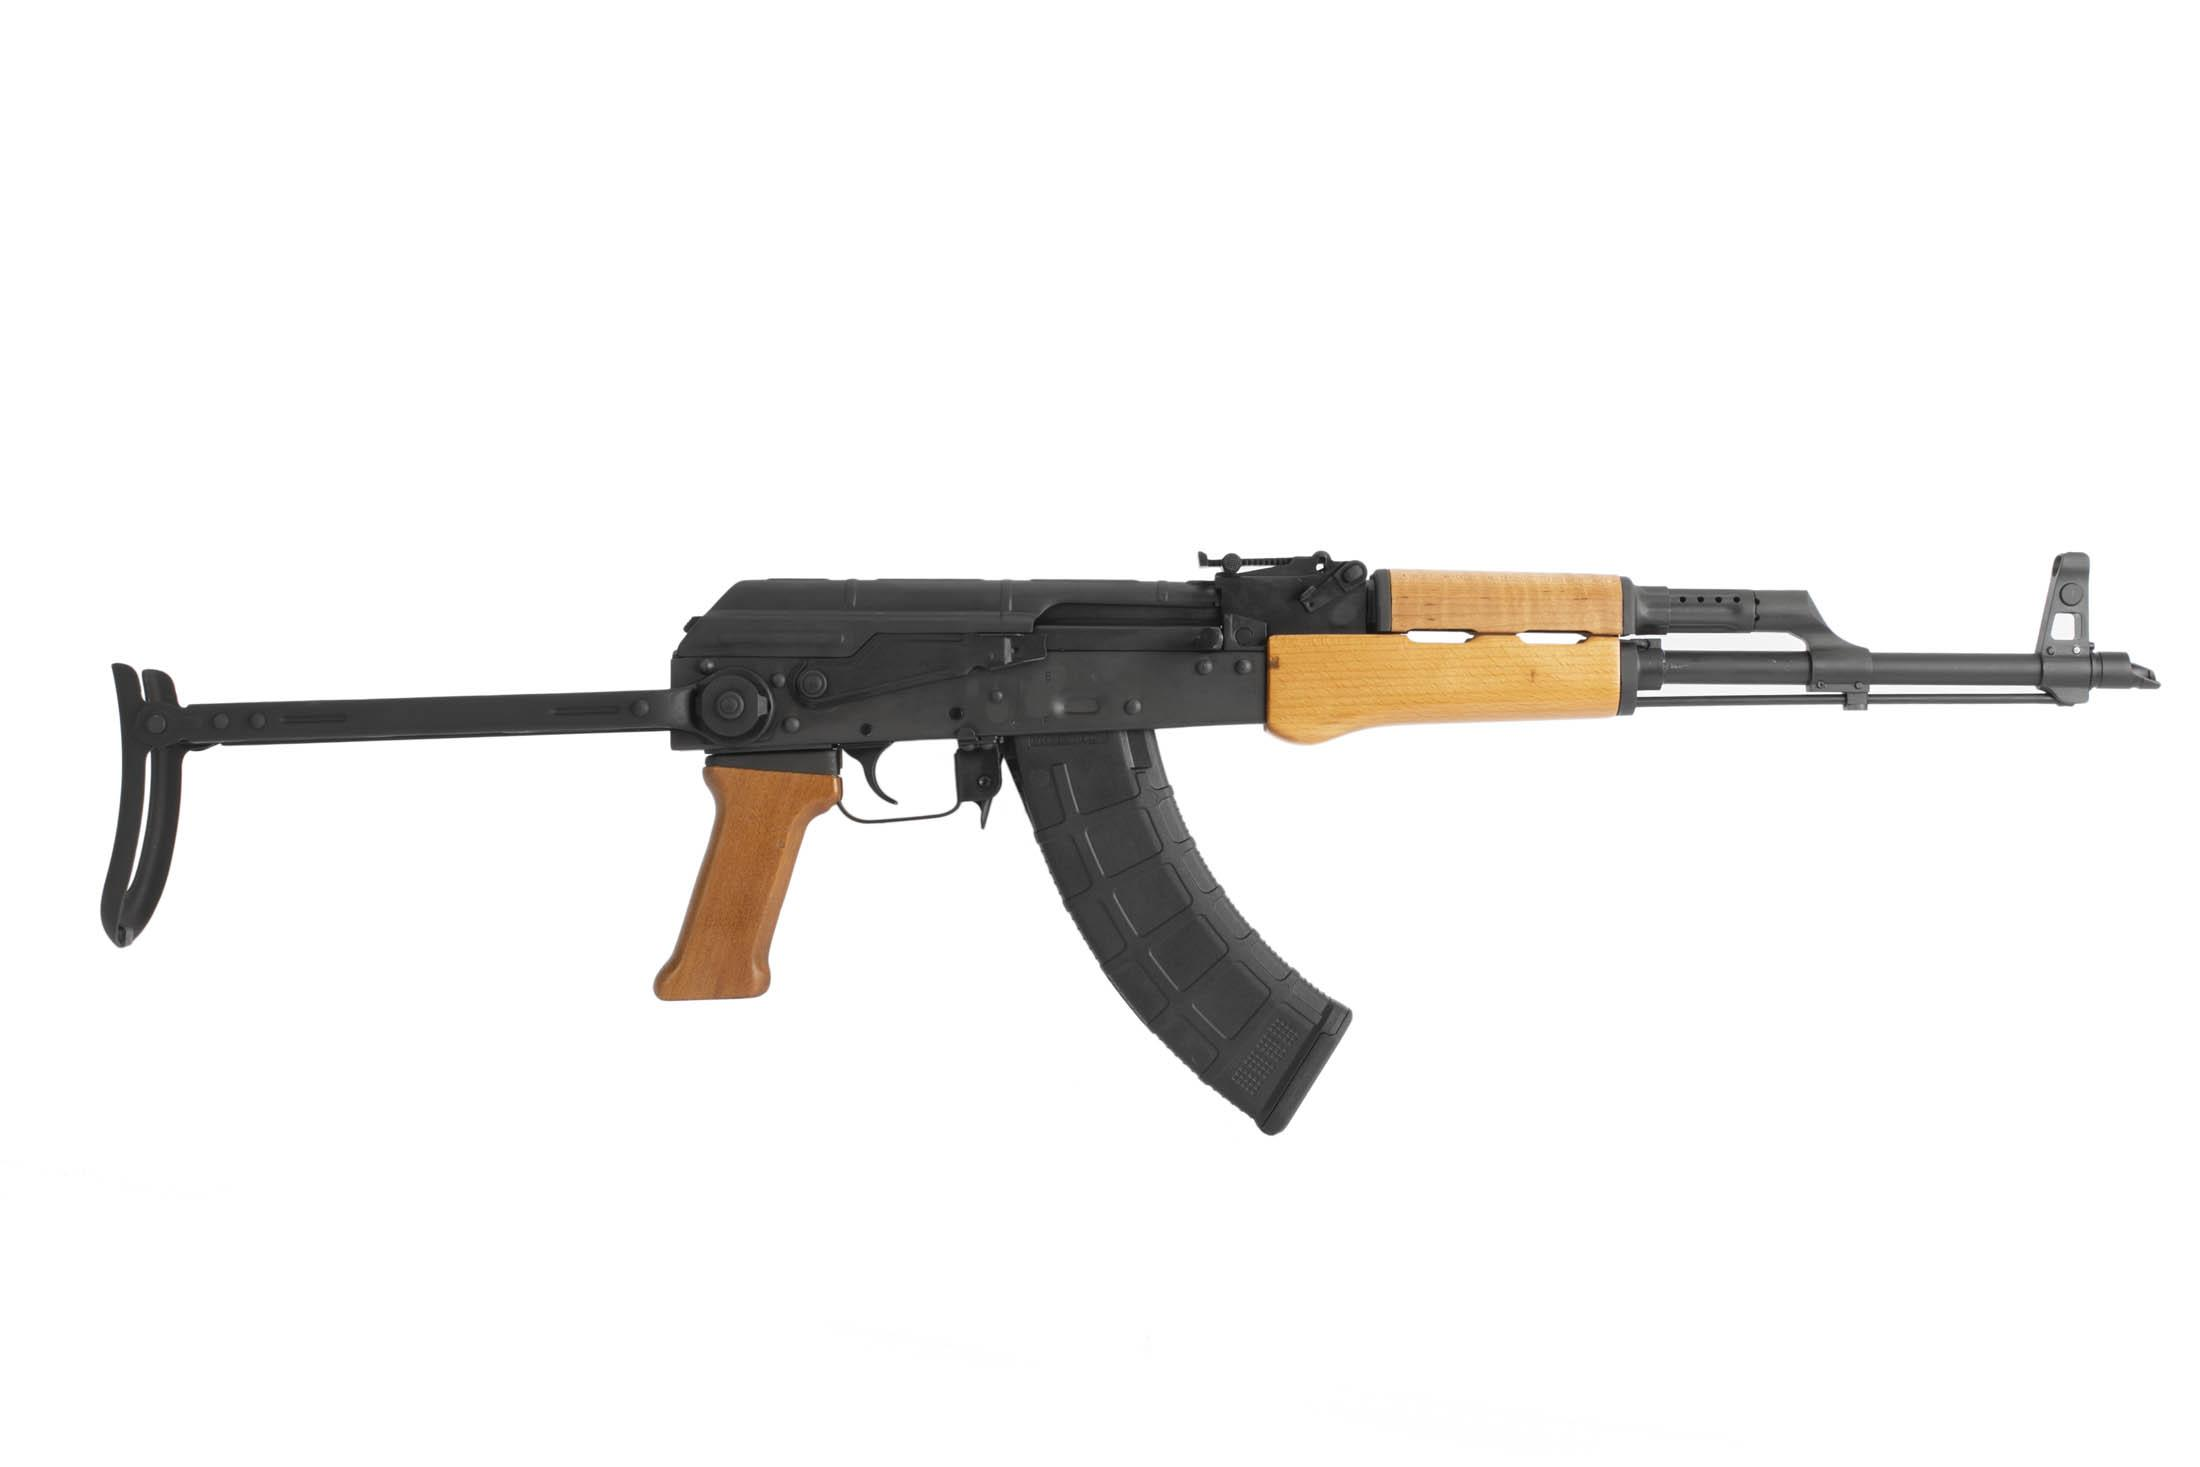 Century Arms 16.5in Hungarian AK63DS underfolder 7.62x39 AK-47 complete rifle includes cleaning rod and slant brake